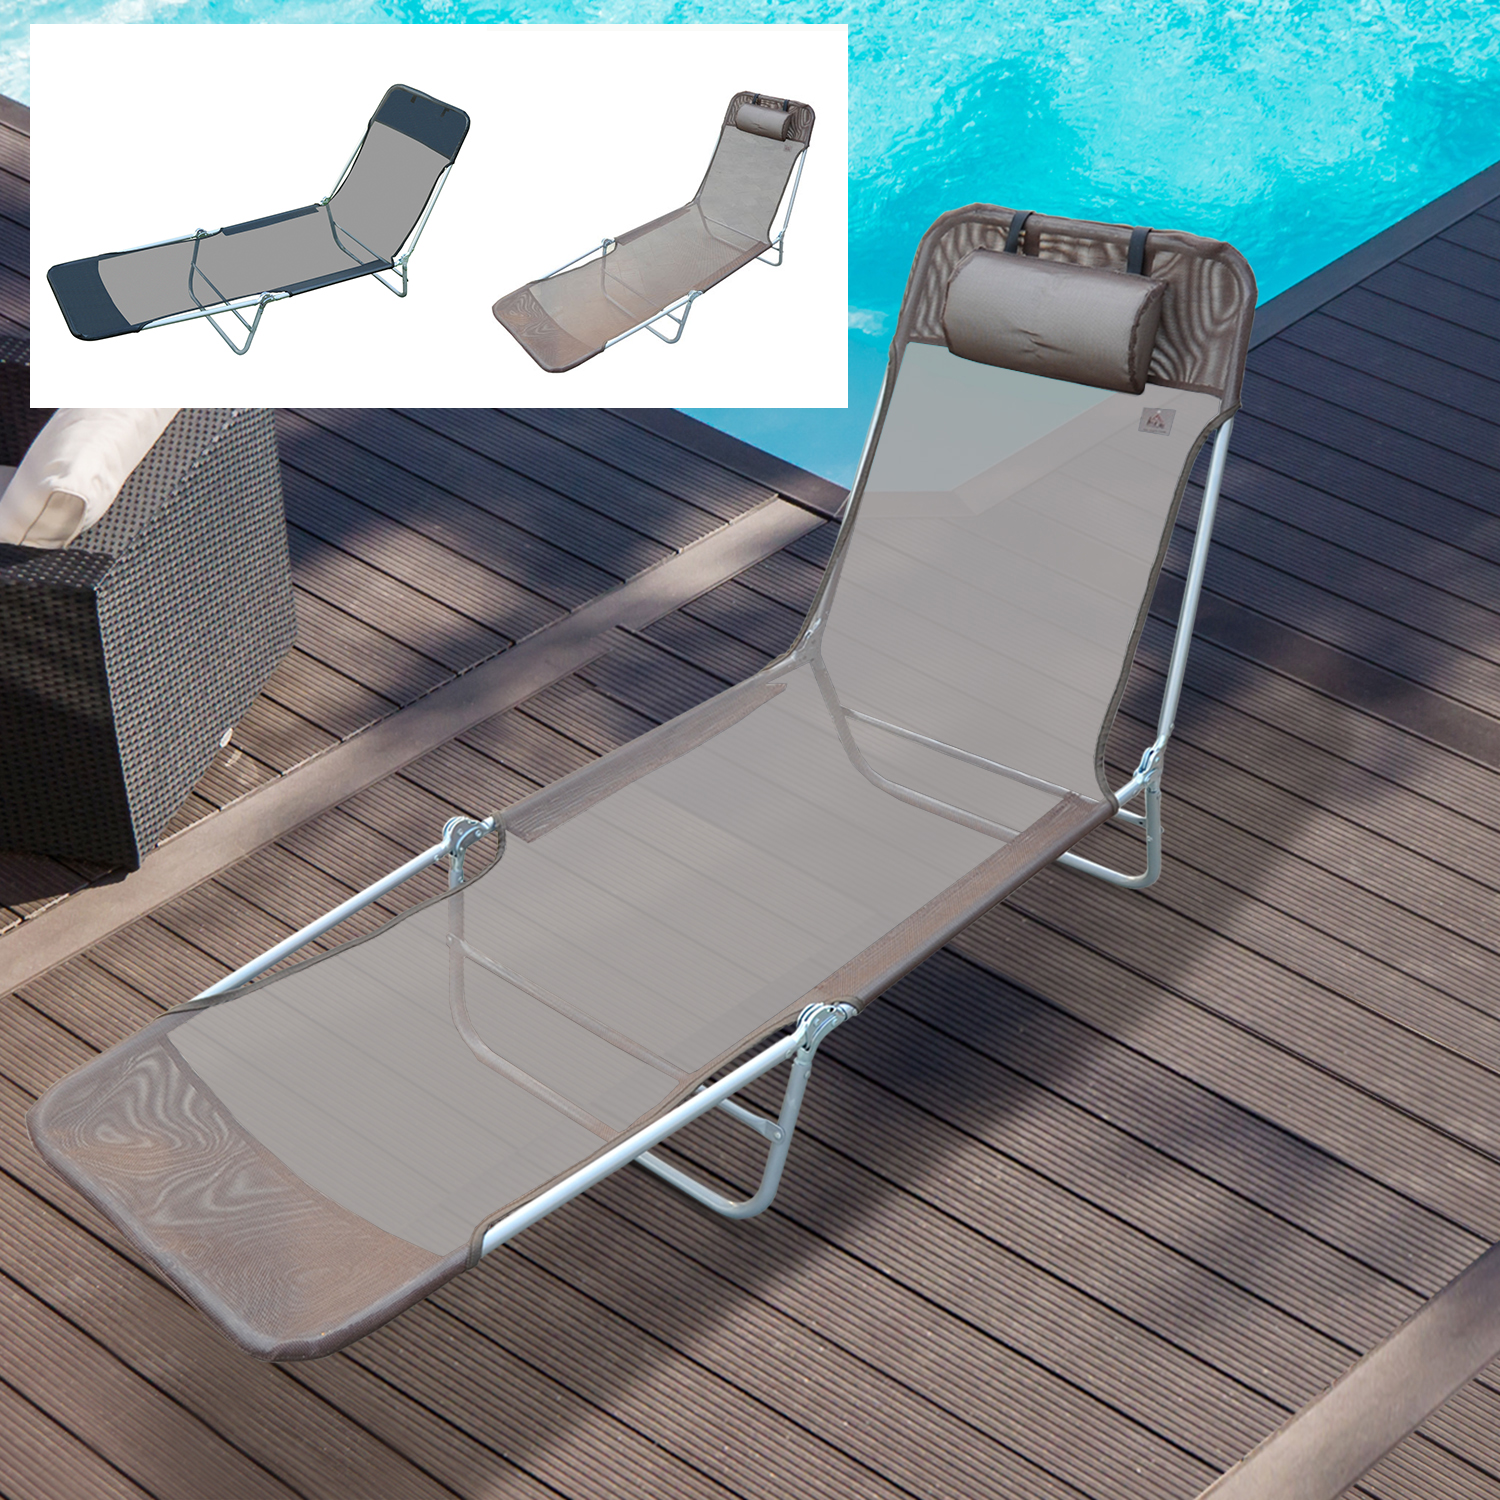 Admirable Details About Beach Lounge Chair Sun Recliner Folding Adjustable Garden Teslin 2 Colors Caraccident5 Cool Chair Designs And Ideas Caraccident5Info